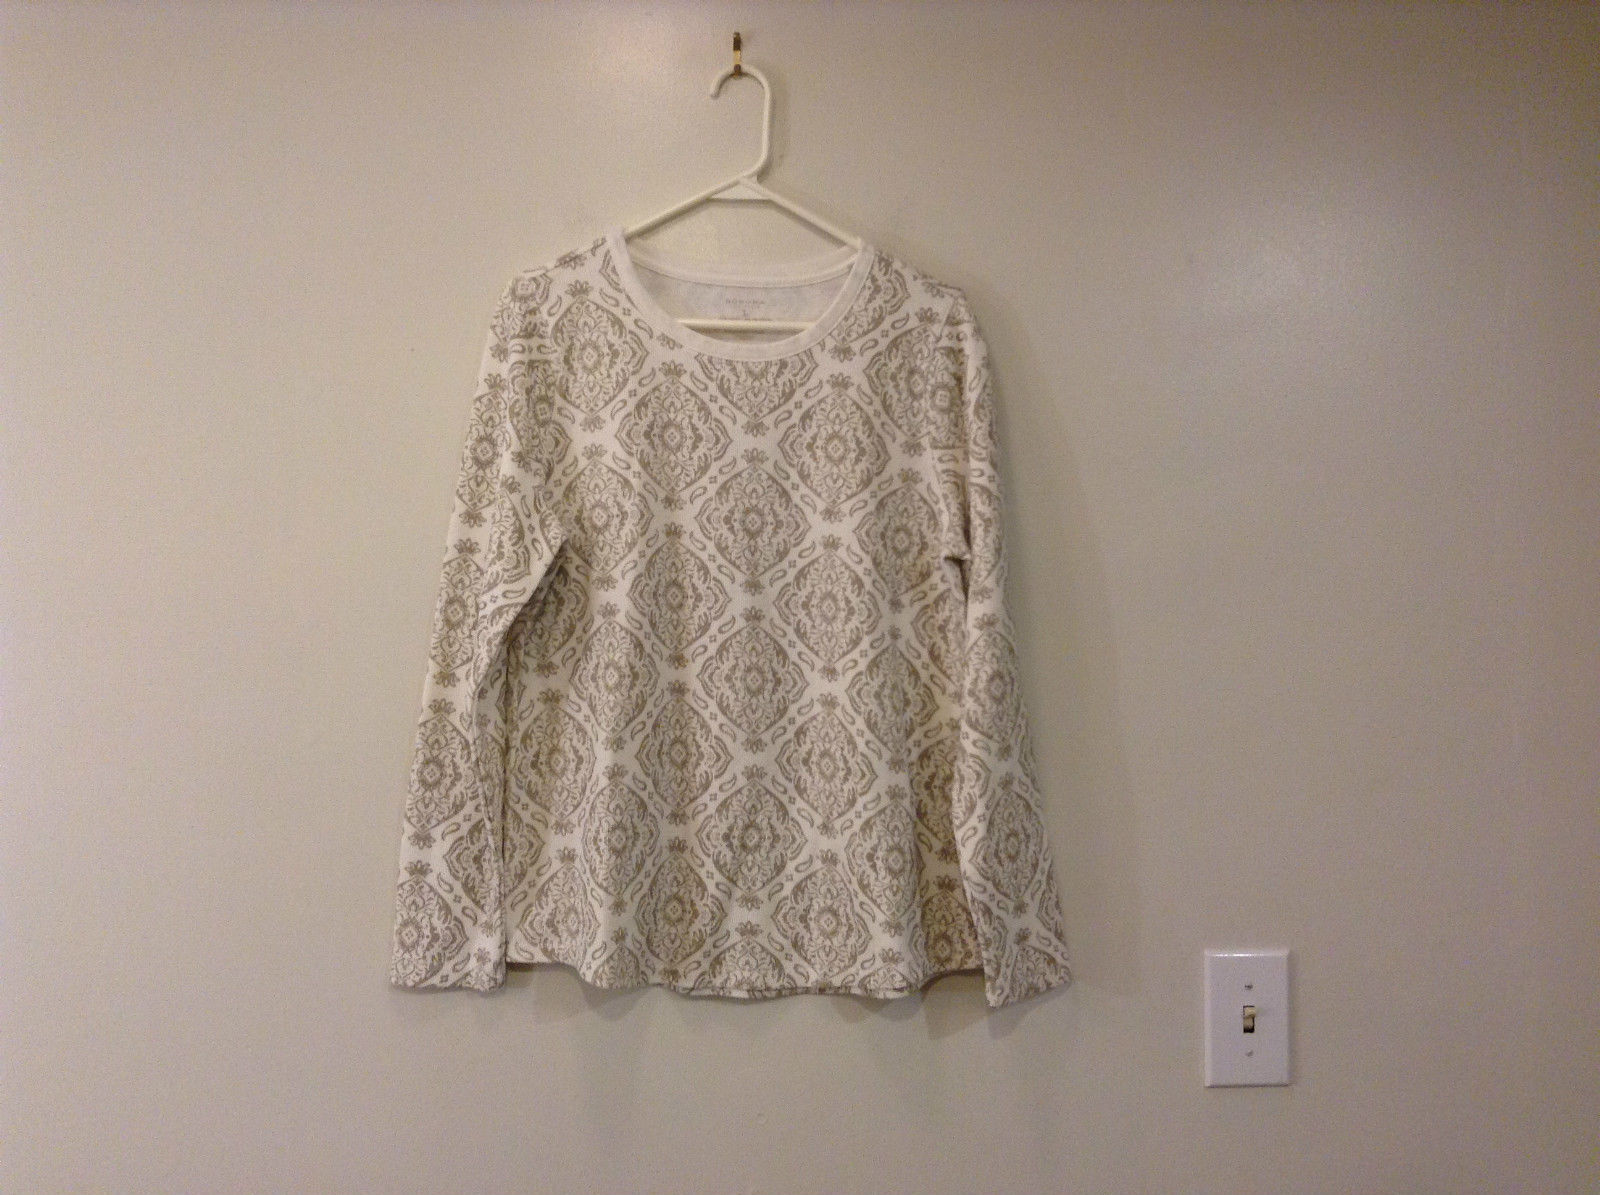 White with Light Brown Pattern Long Sleeve Top Sonoma Size L Very Good Condition